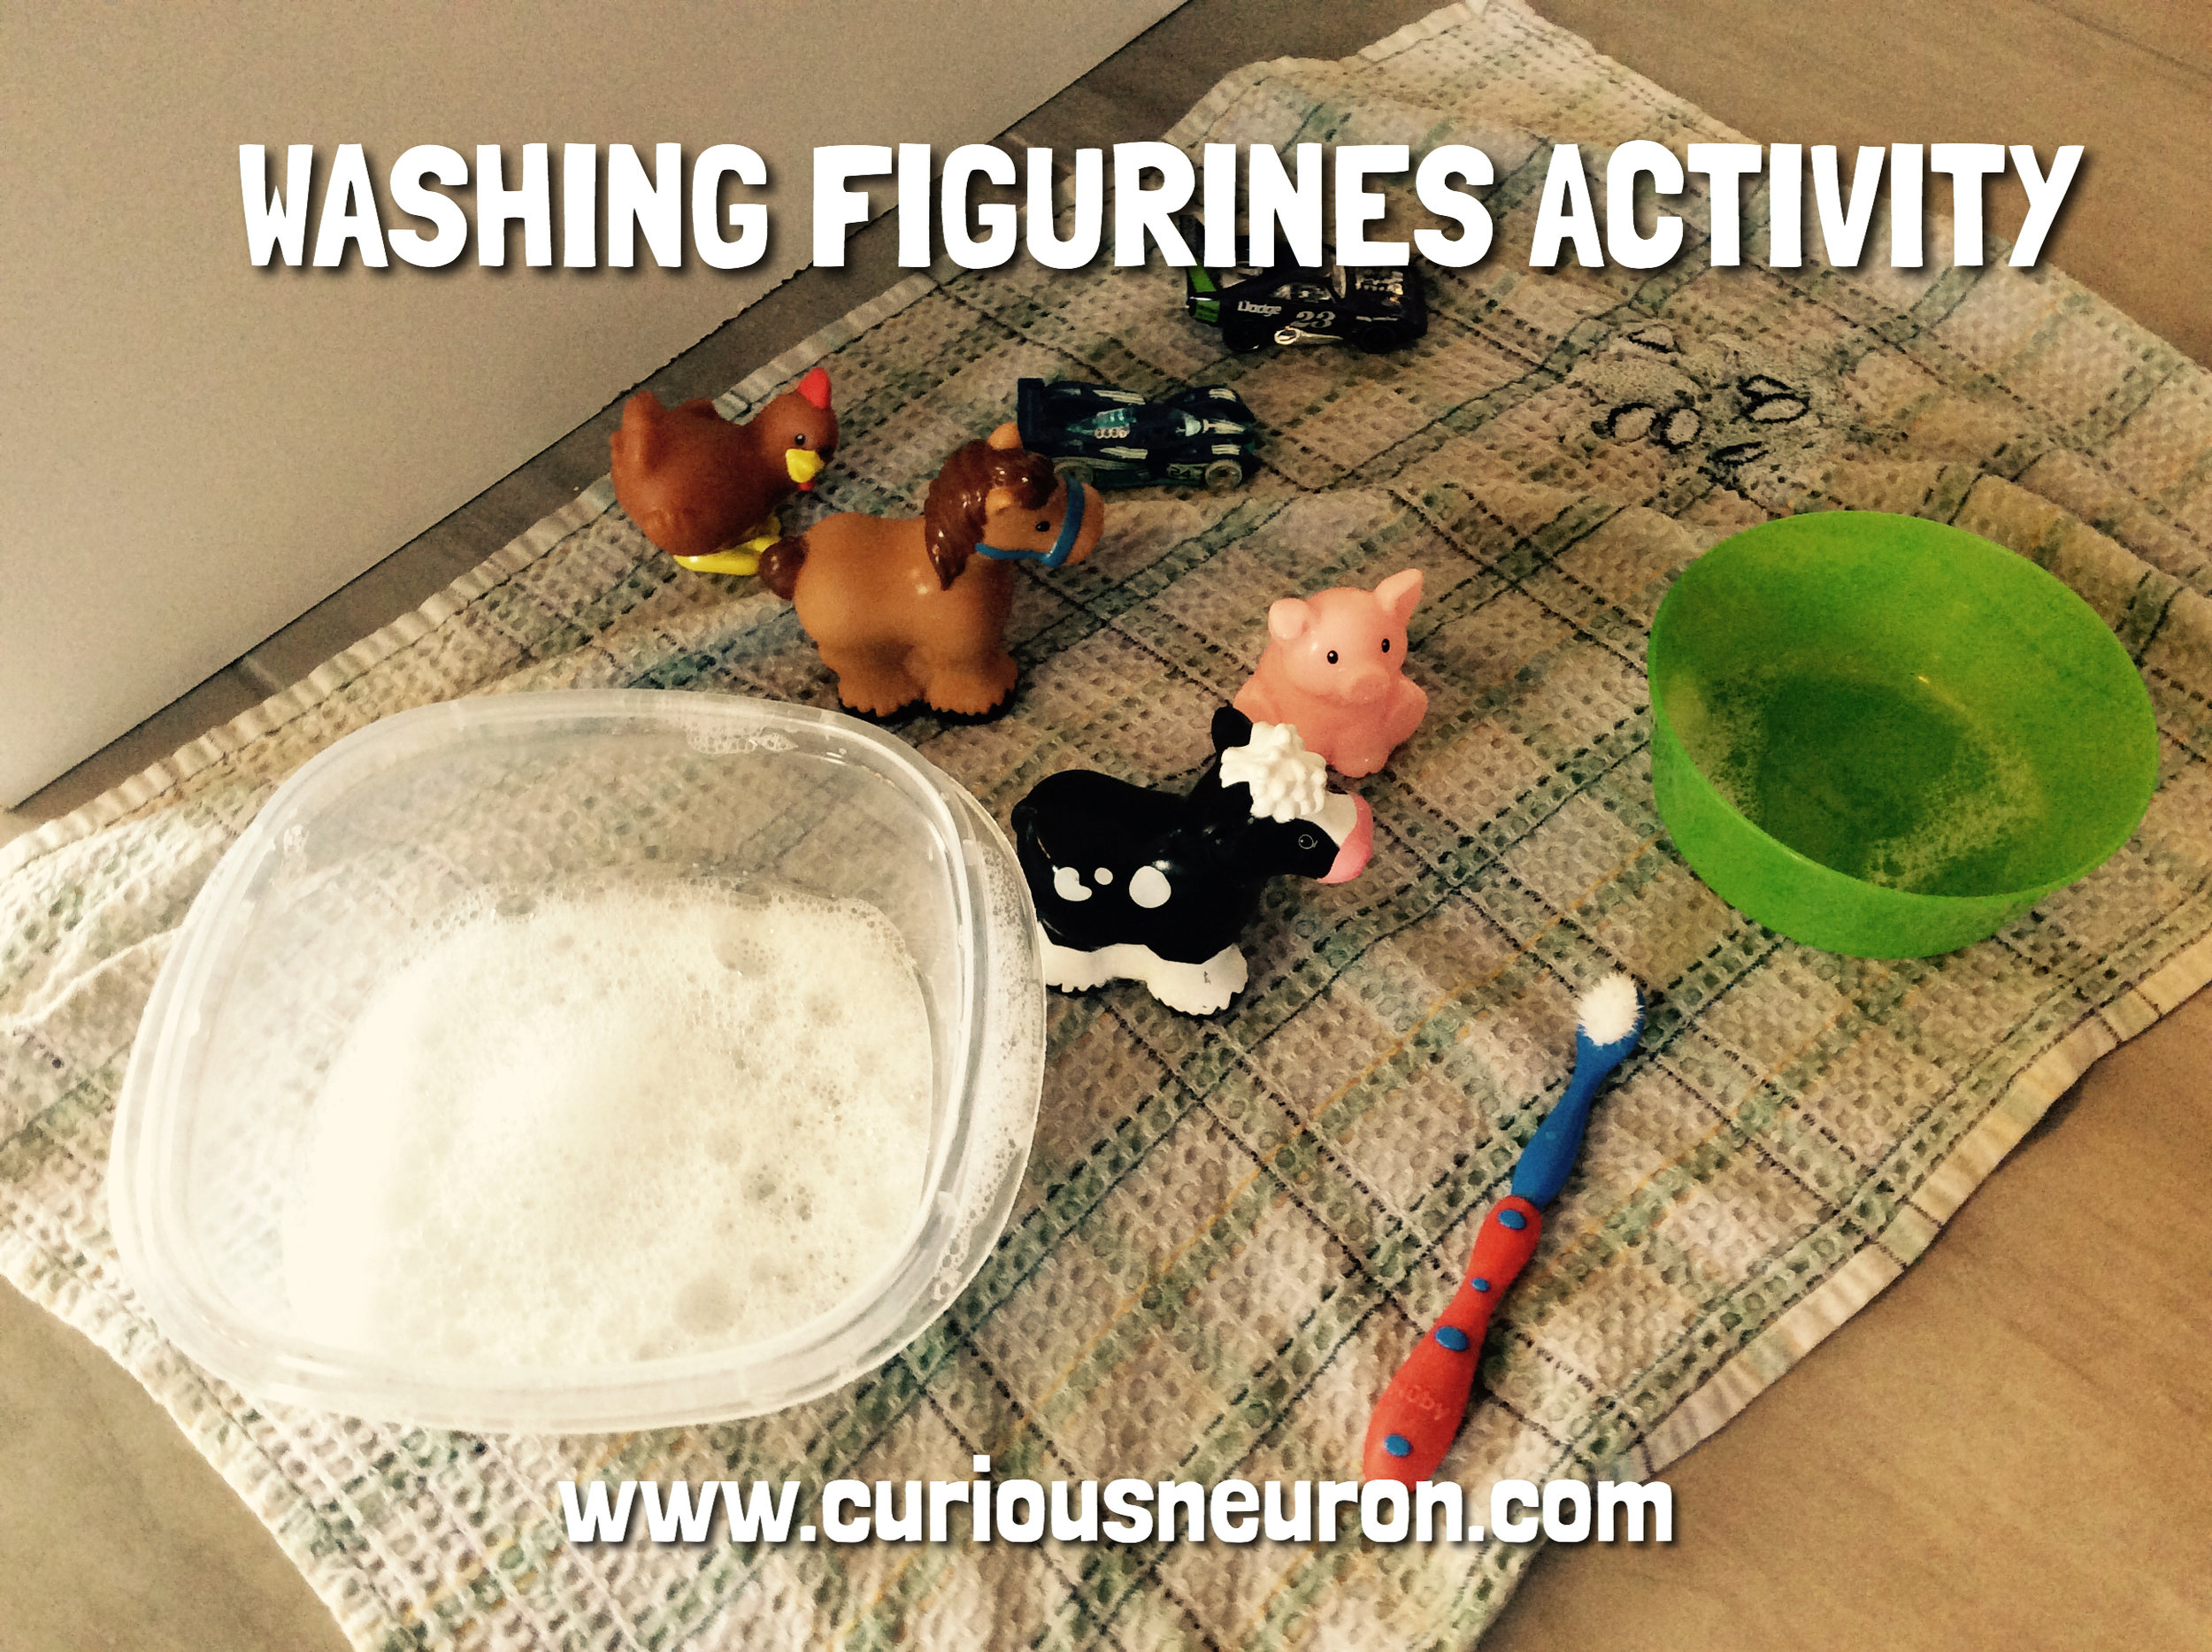 Need a quick activity with very little materials? A container with soapy water, another with only water, an old toothbrush (or a sponge) and some toys that can get wet (I use  Little People figurines  or  Hot Wheels cars . Playing with water is fun! I ask my children to wash their toys and rinse them off with the water. Then I have them dry them with a cloth.